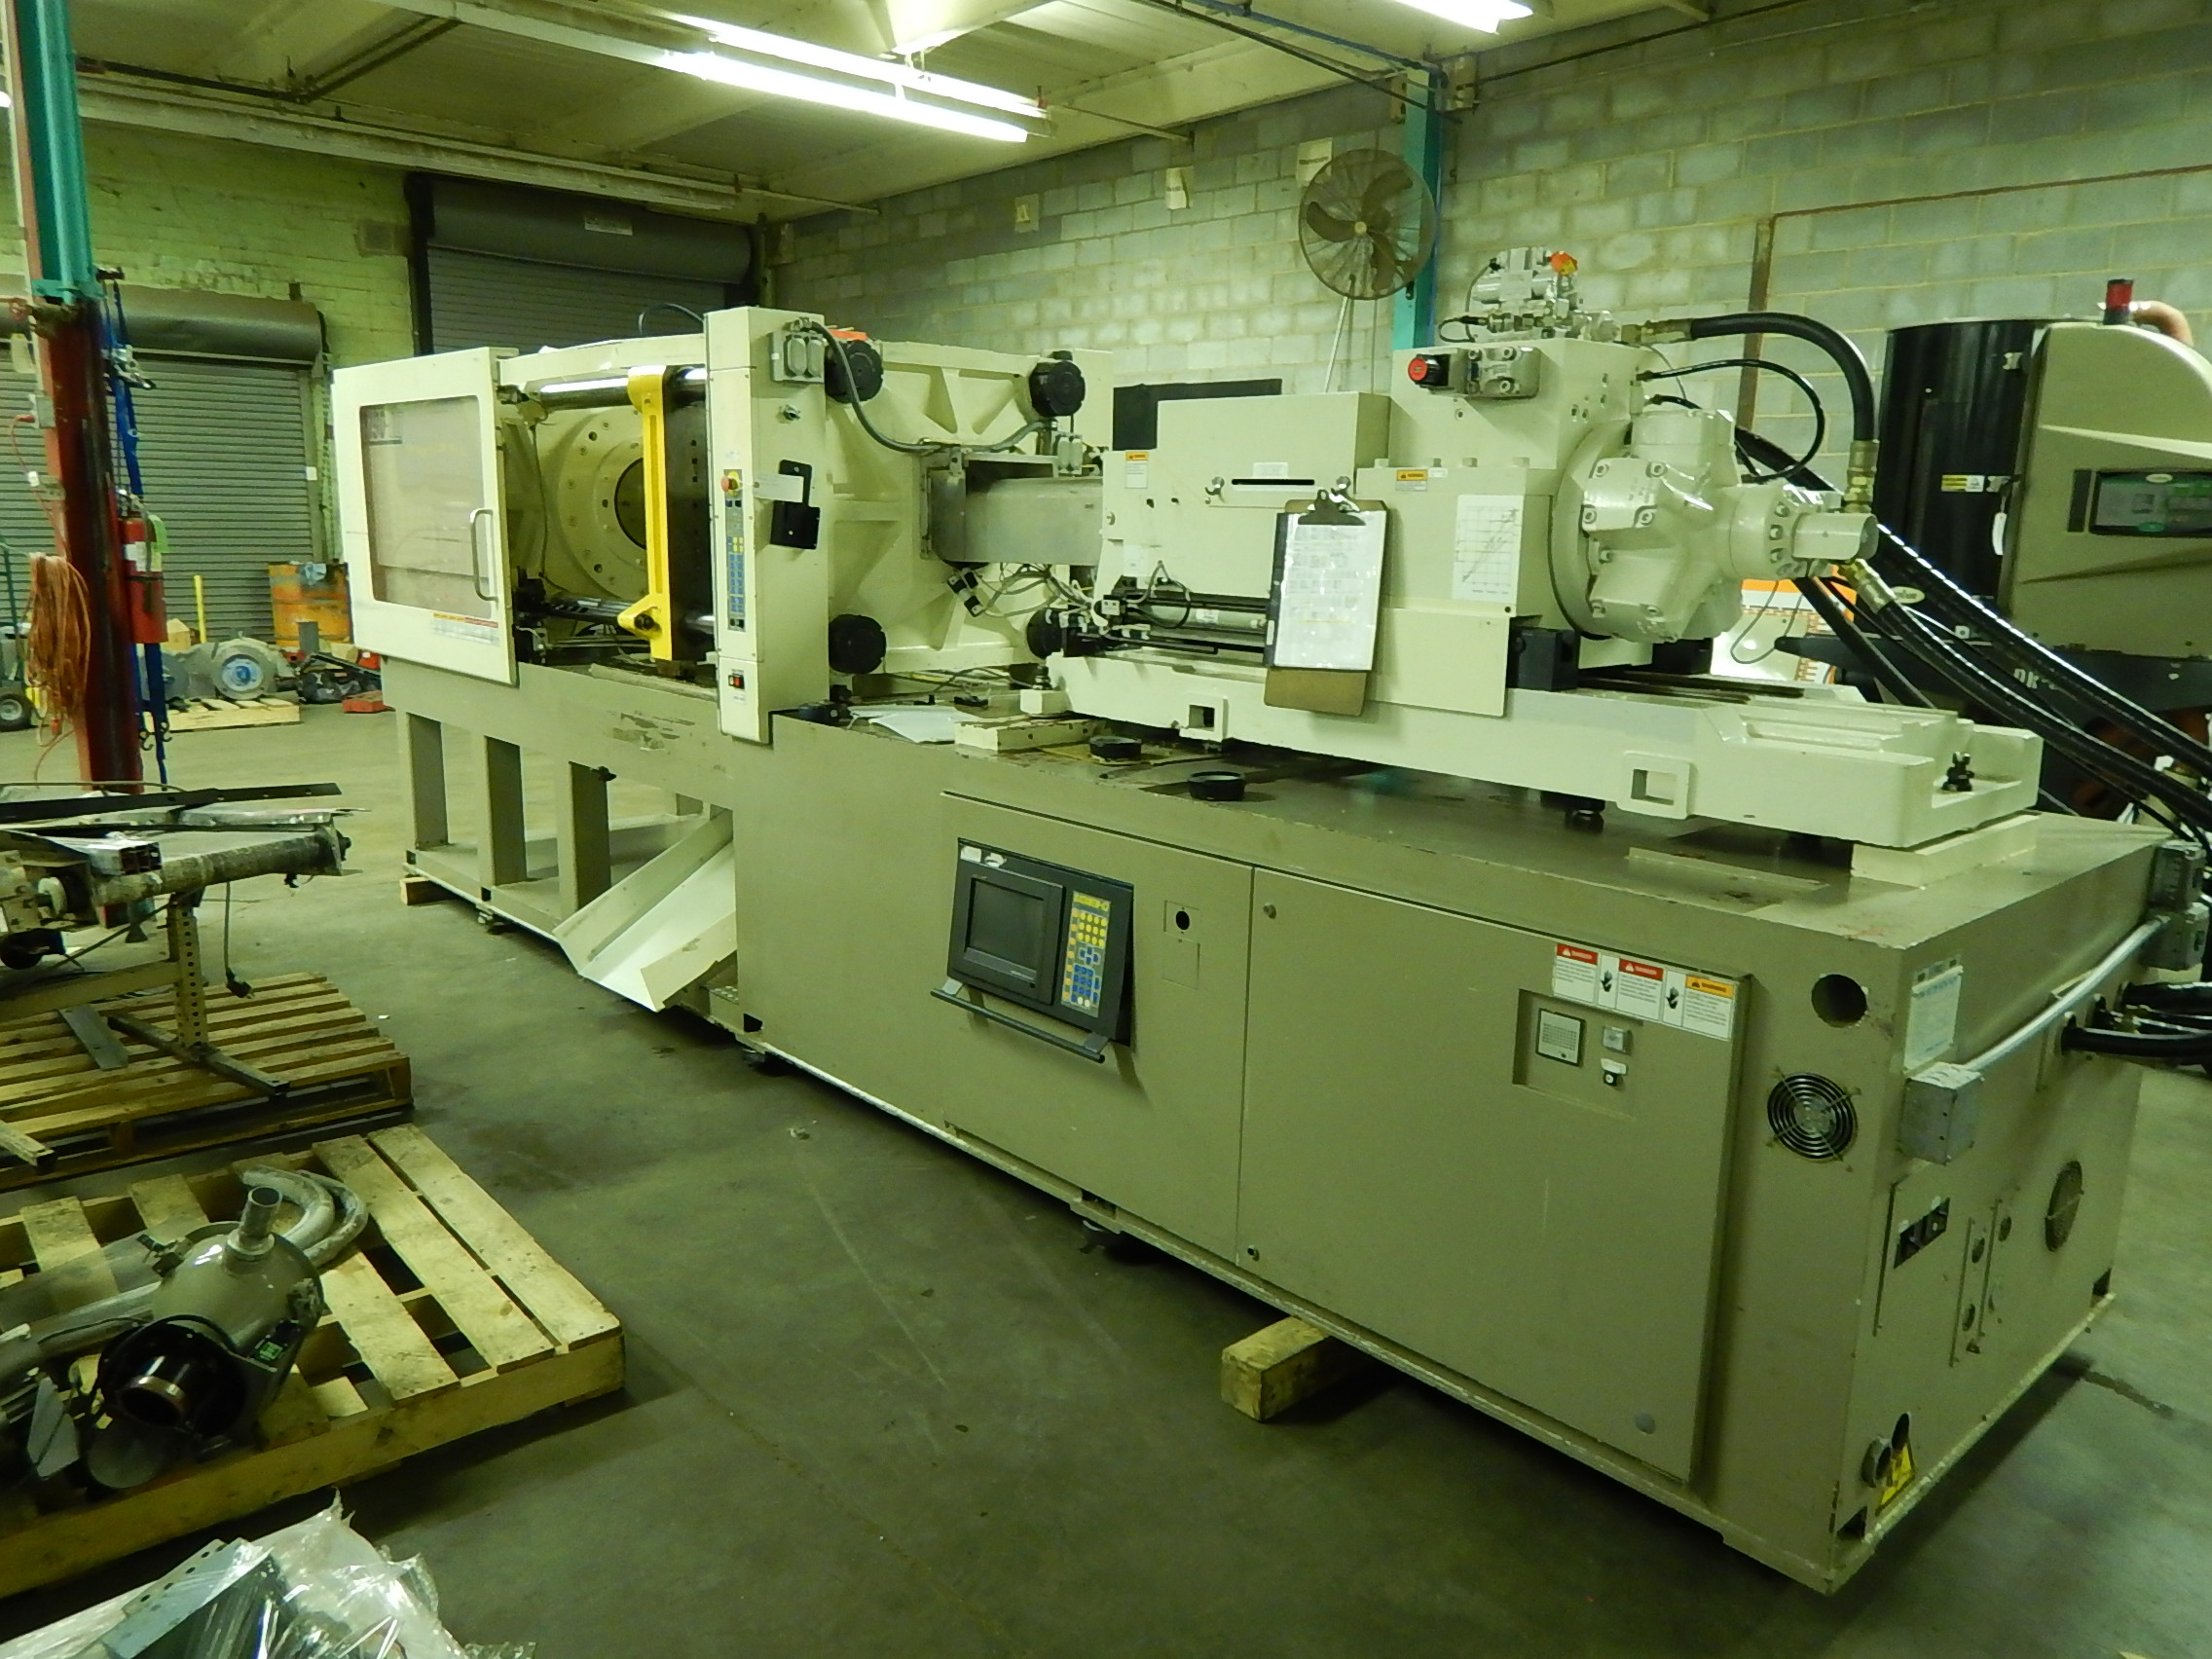 Shinwa-Sekei DM190 Used Injection Molding Machine, 190 ton, Yr. 1999, 10.1 oz.